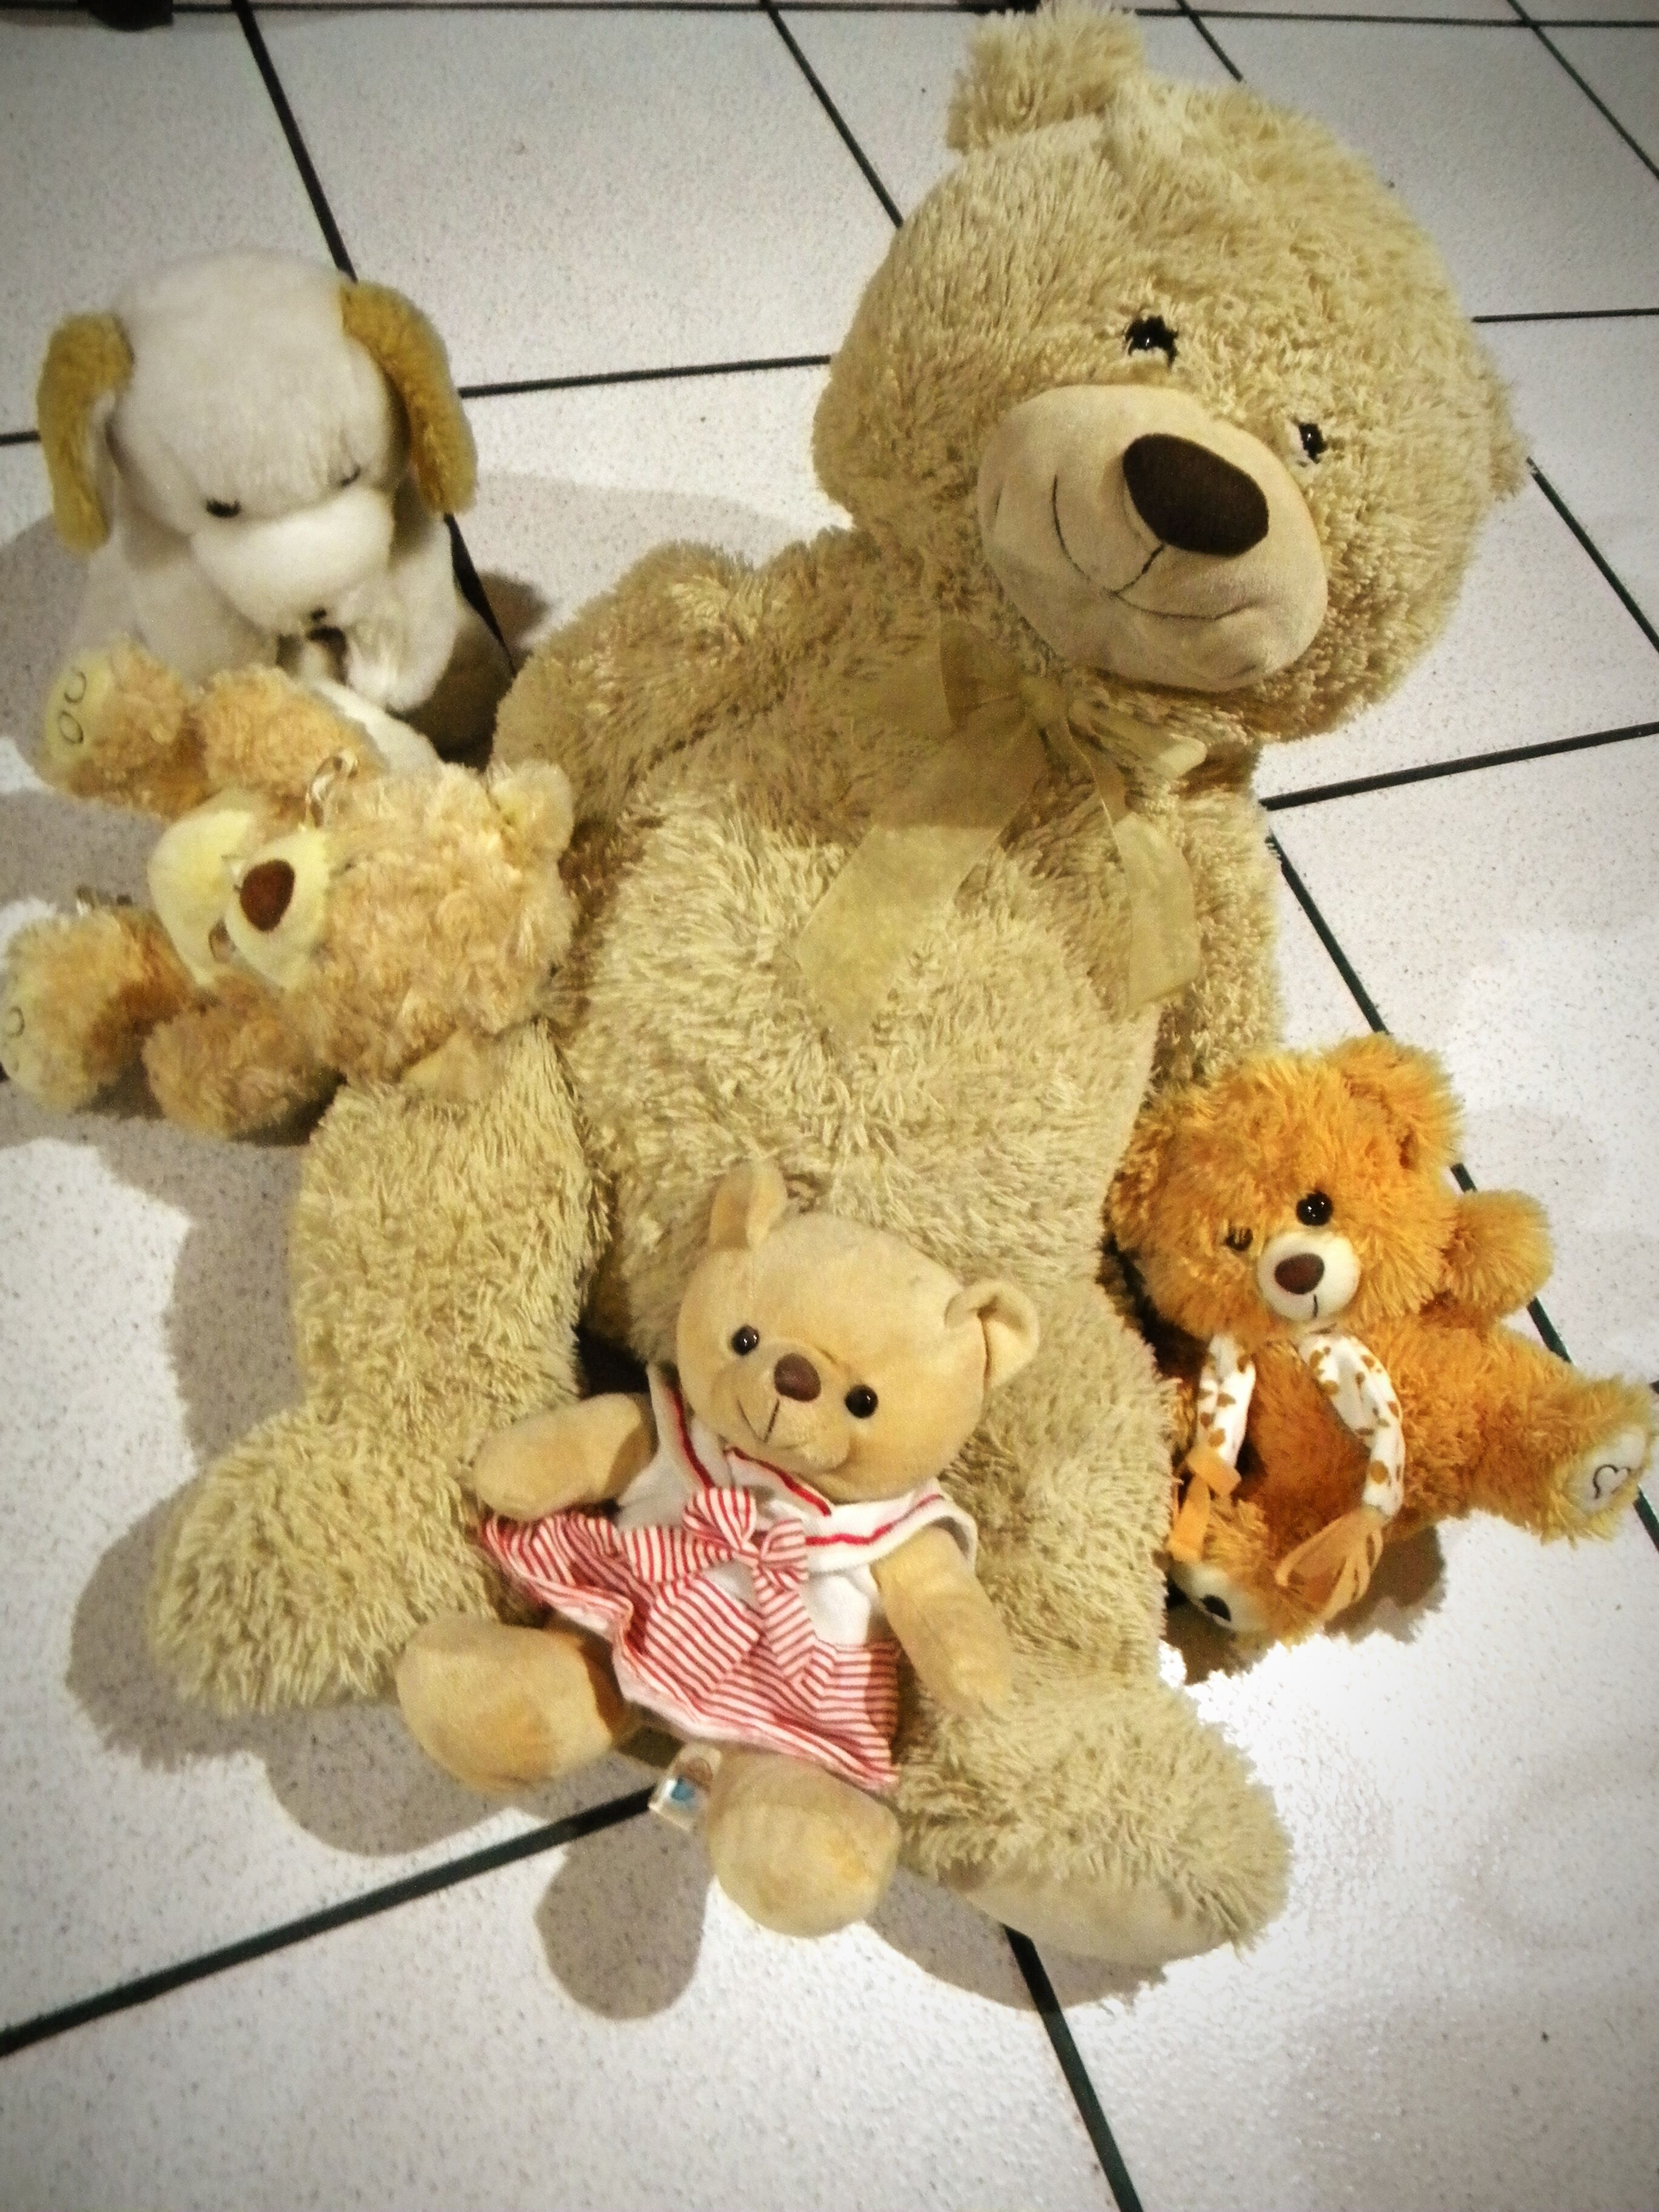 stuffed toy, toy, teddy bear, indoors, no people, childhood, doll, animal representation, close-up, hanging, stuffed, representing, day